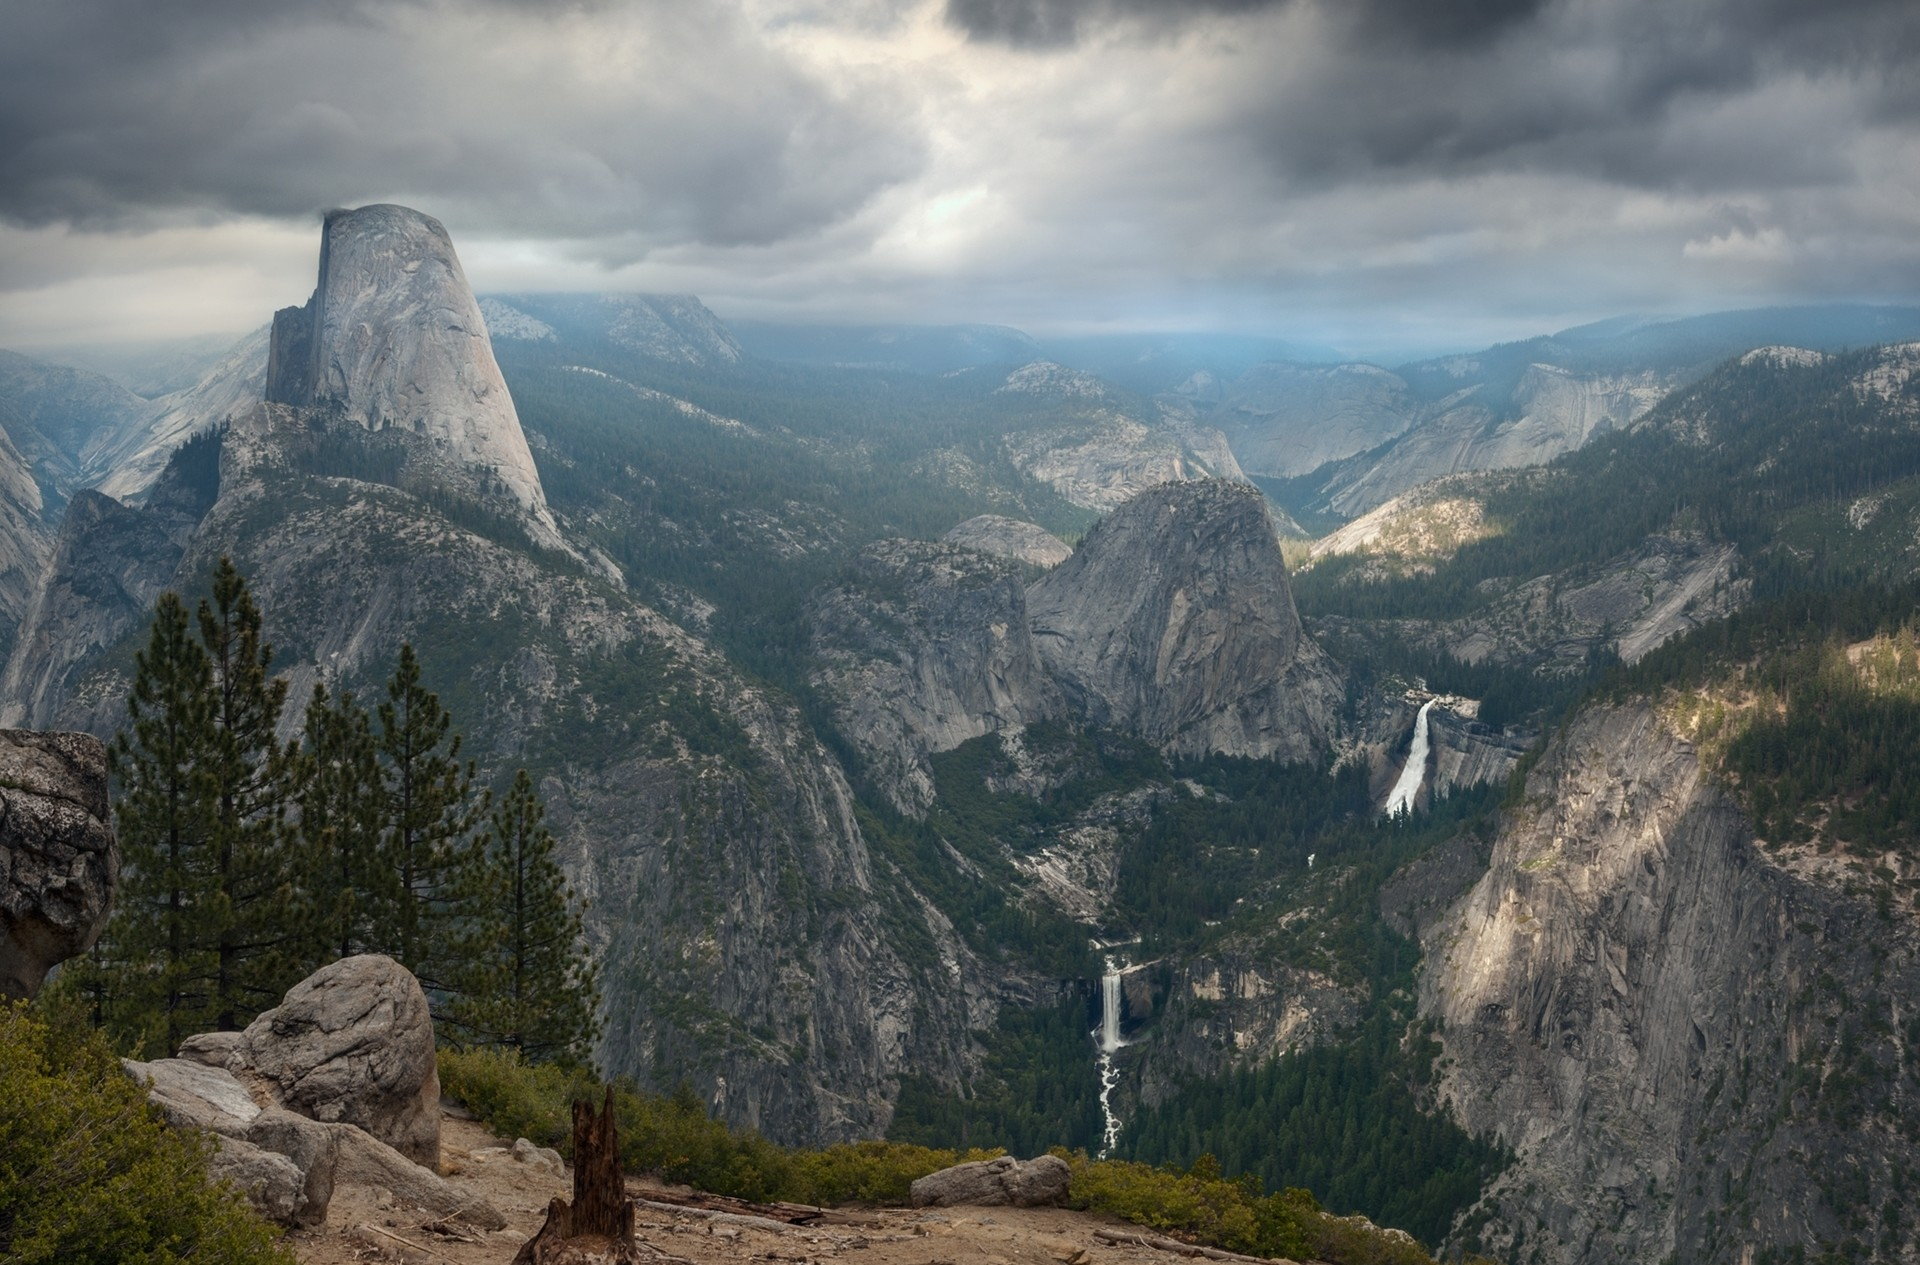 Yosemite national park wallpaper hd 58 images - Yosemite national park hd wallpaper ...